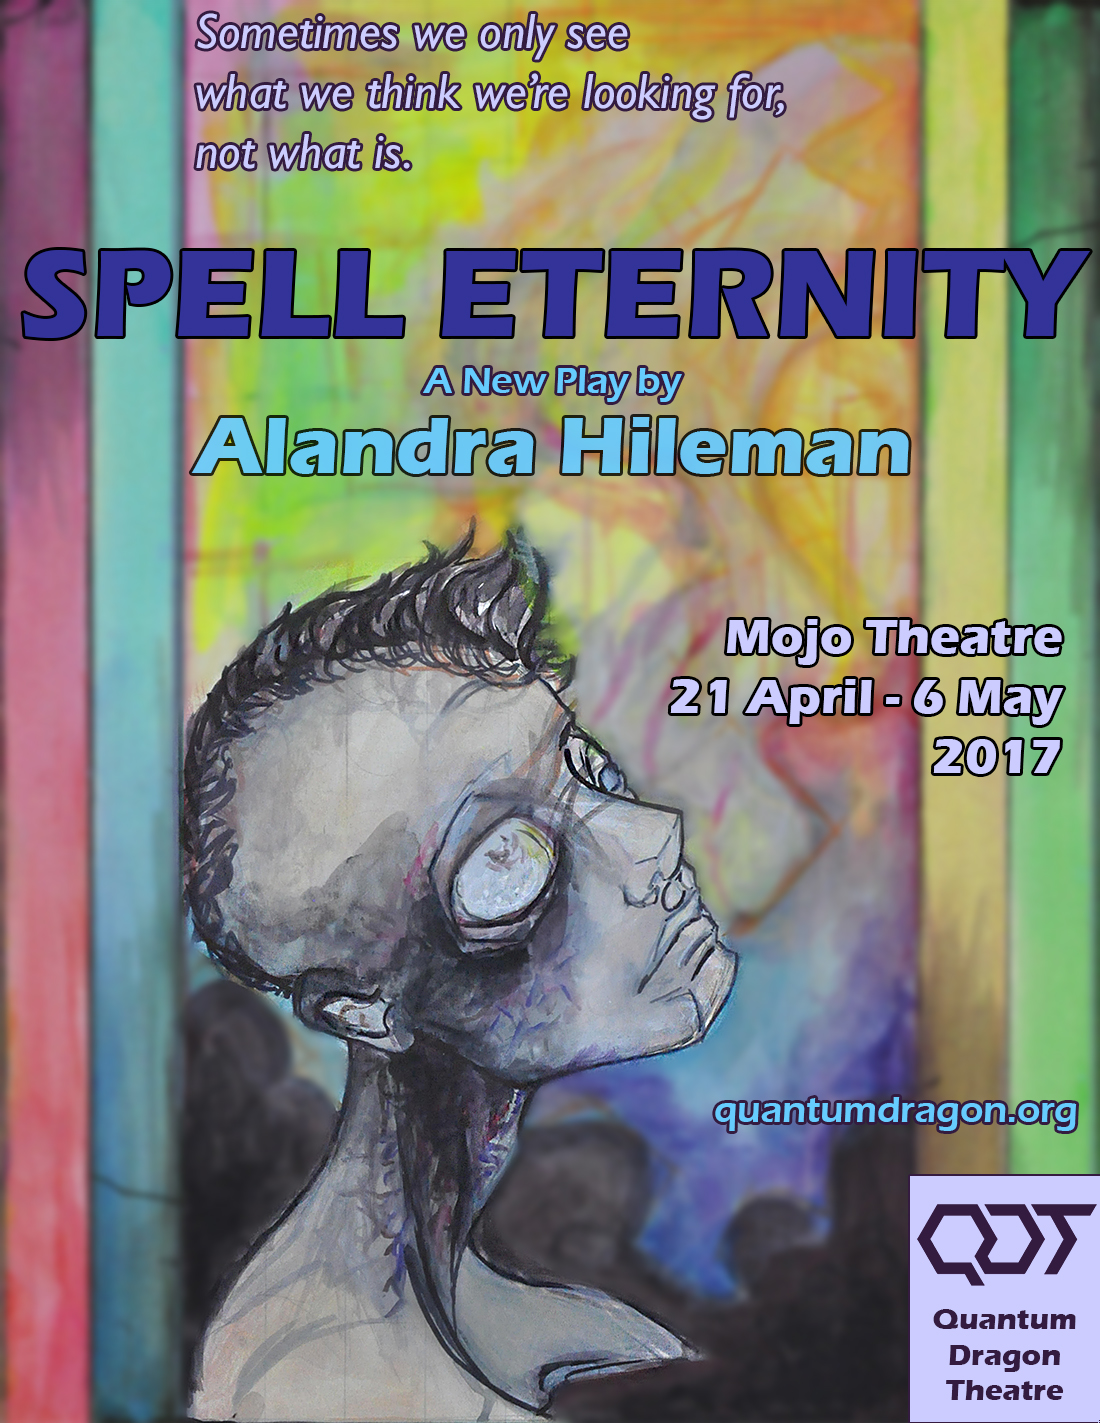 Spell Eternity by Alandra Hileman